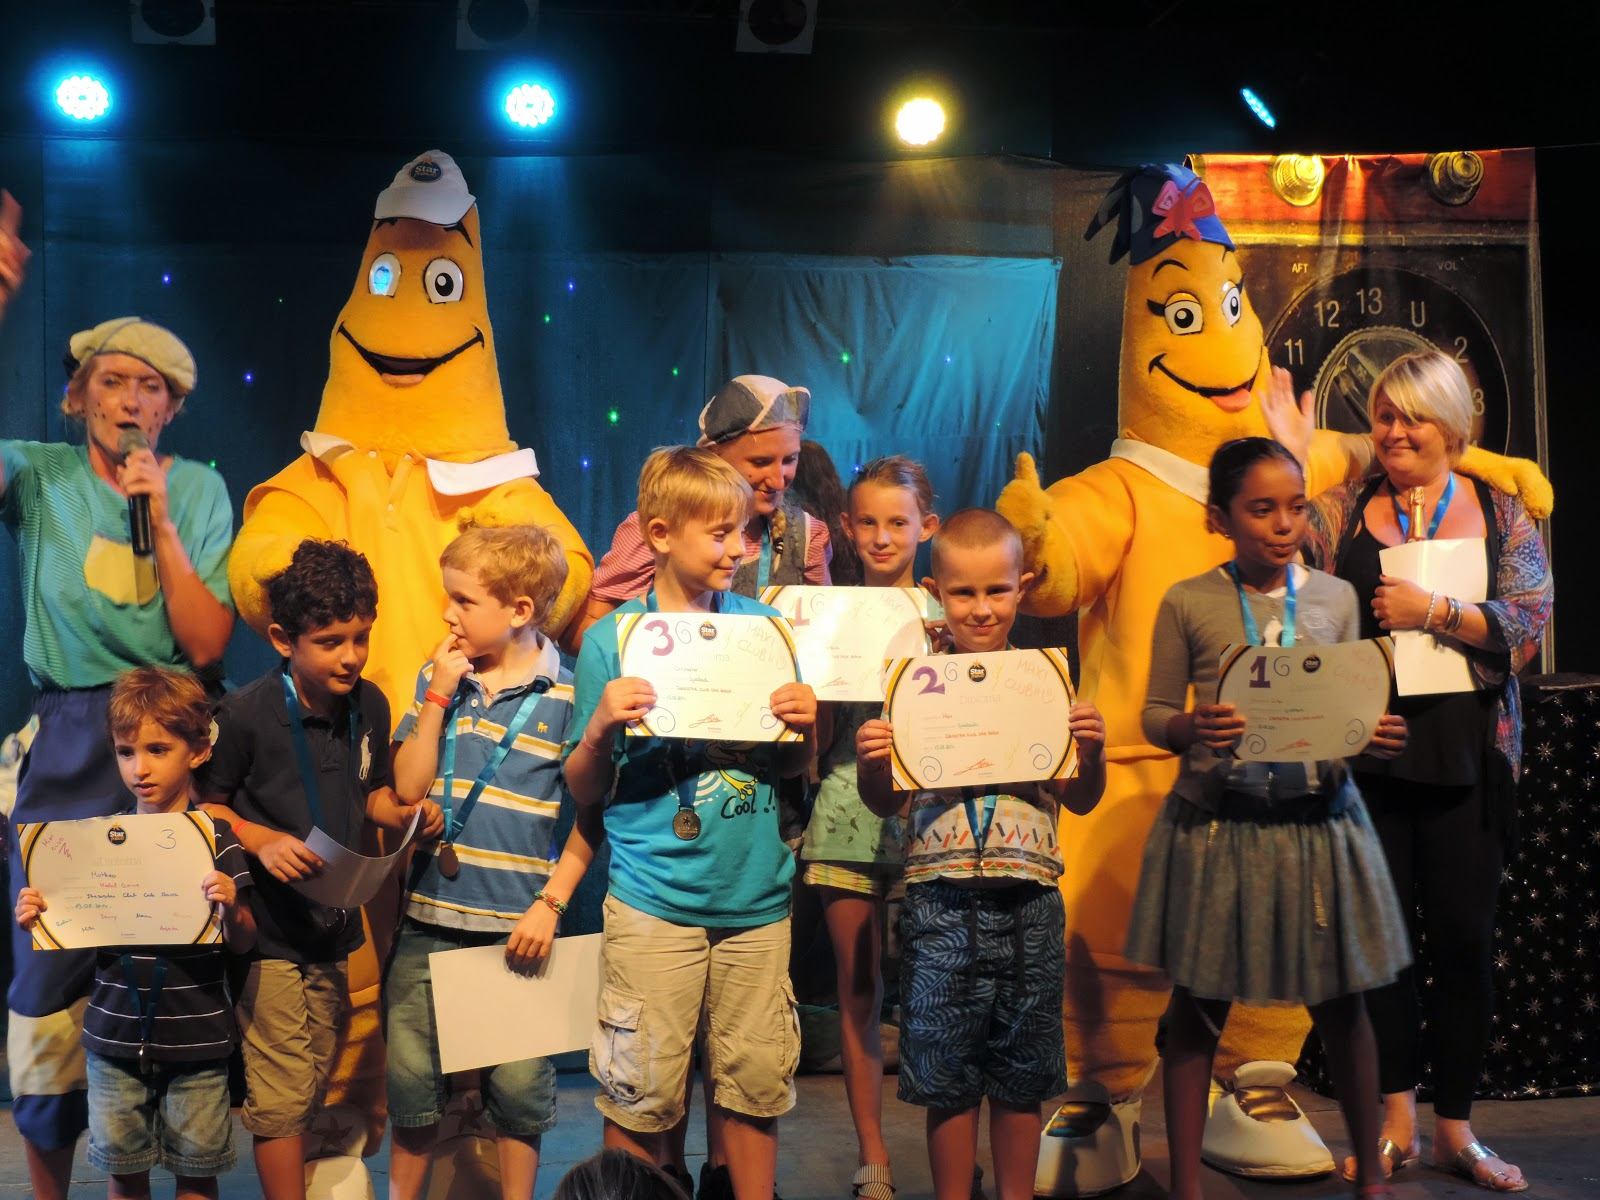 majorca holiday kids prizegiving ceremony